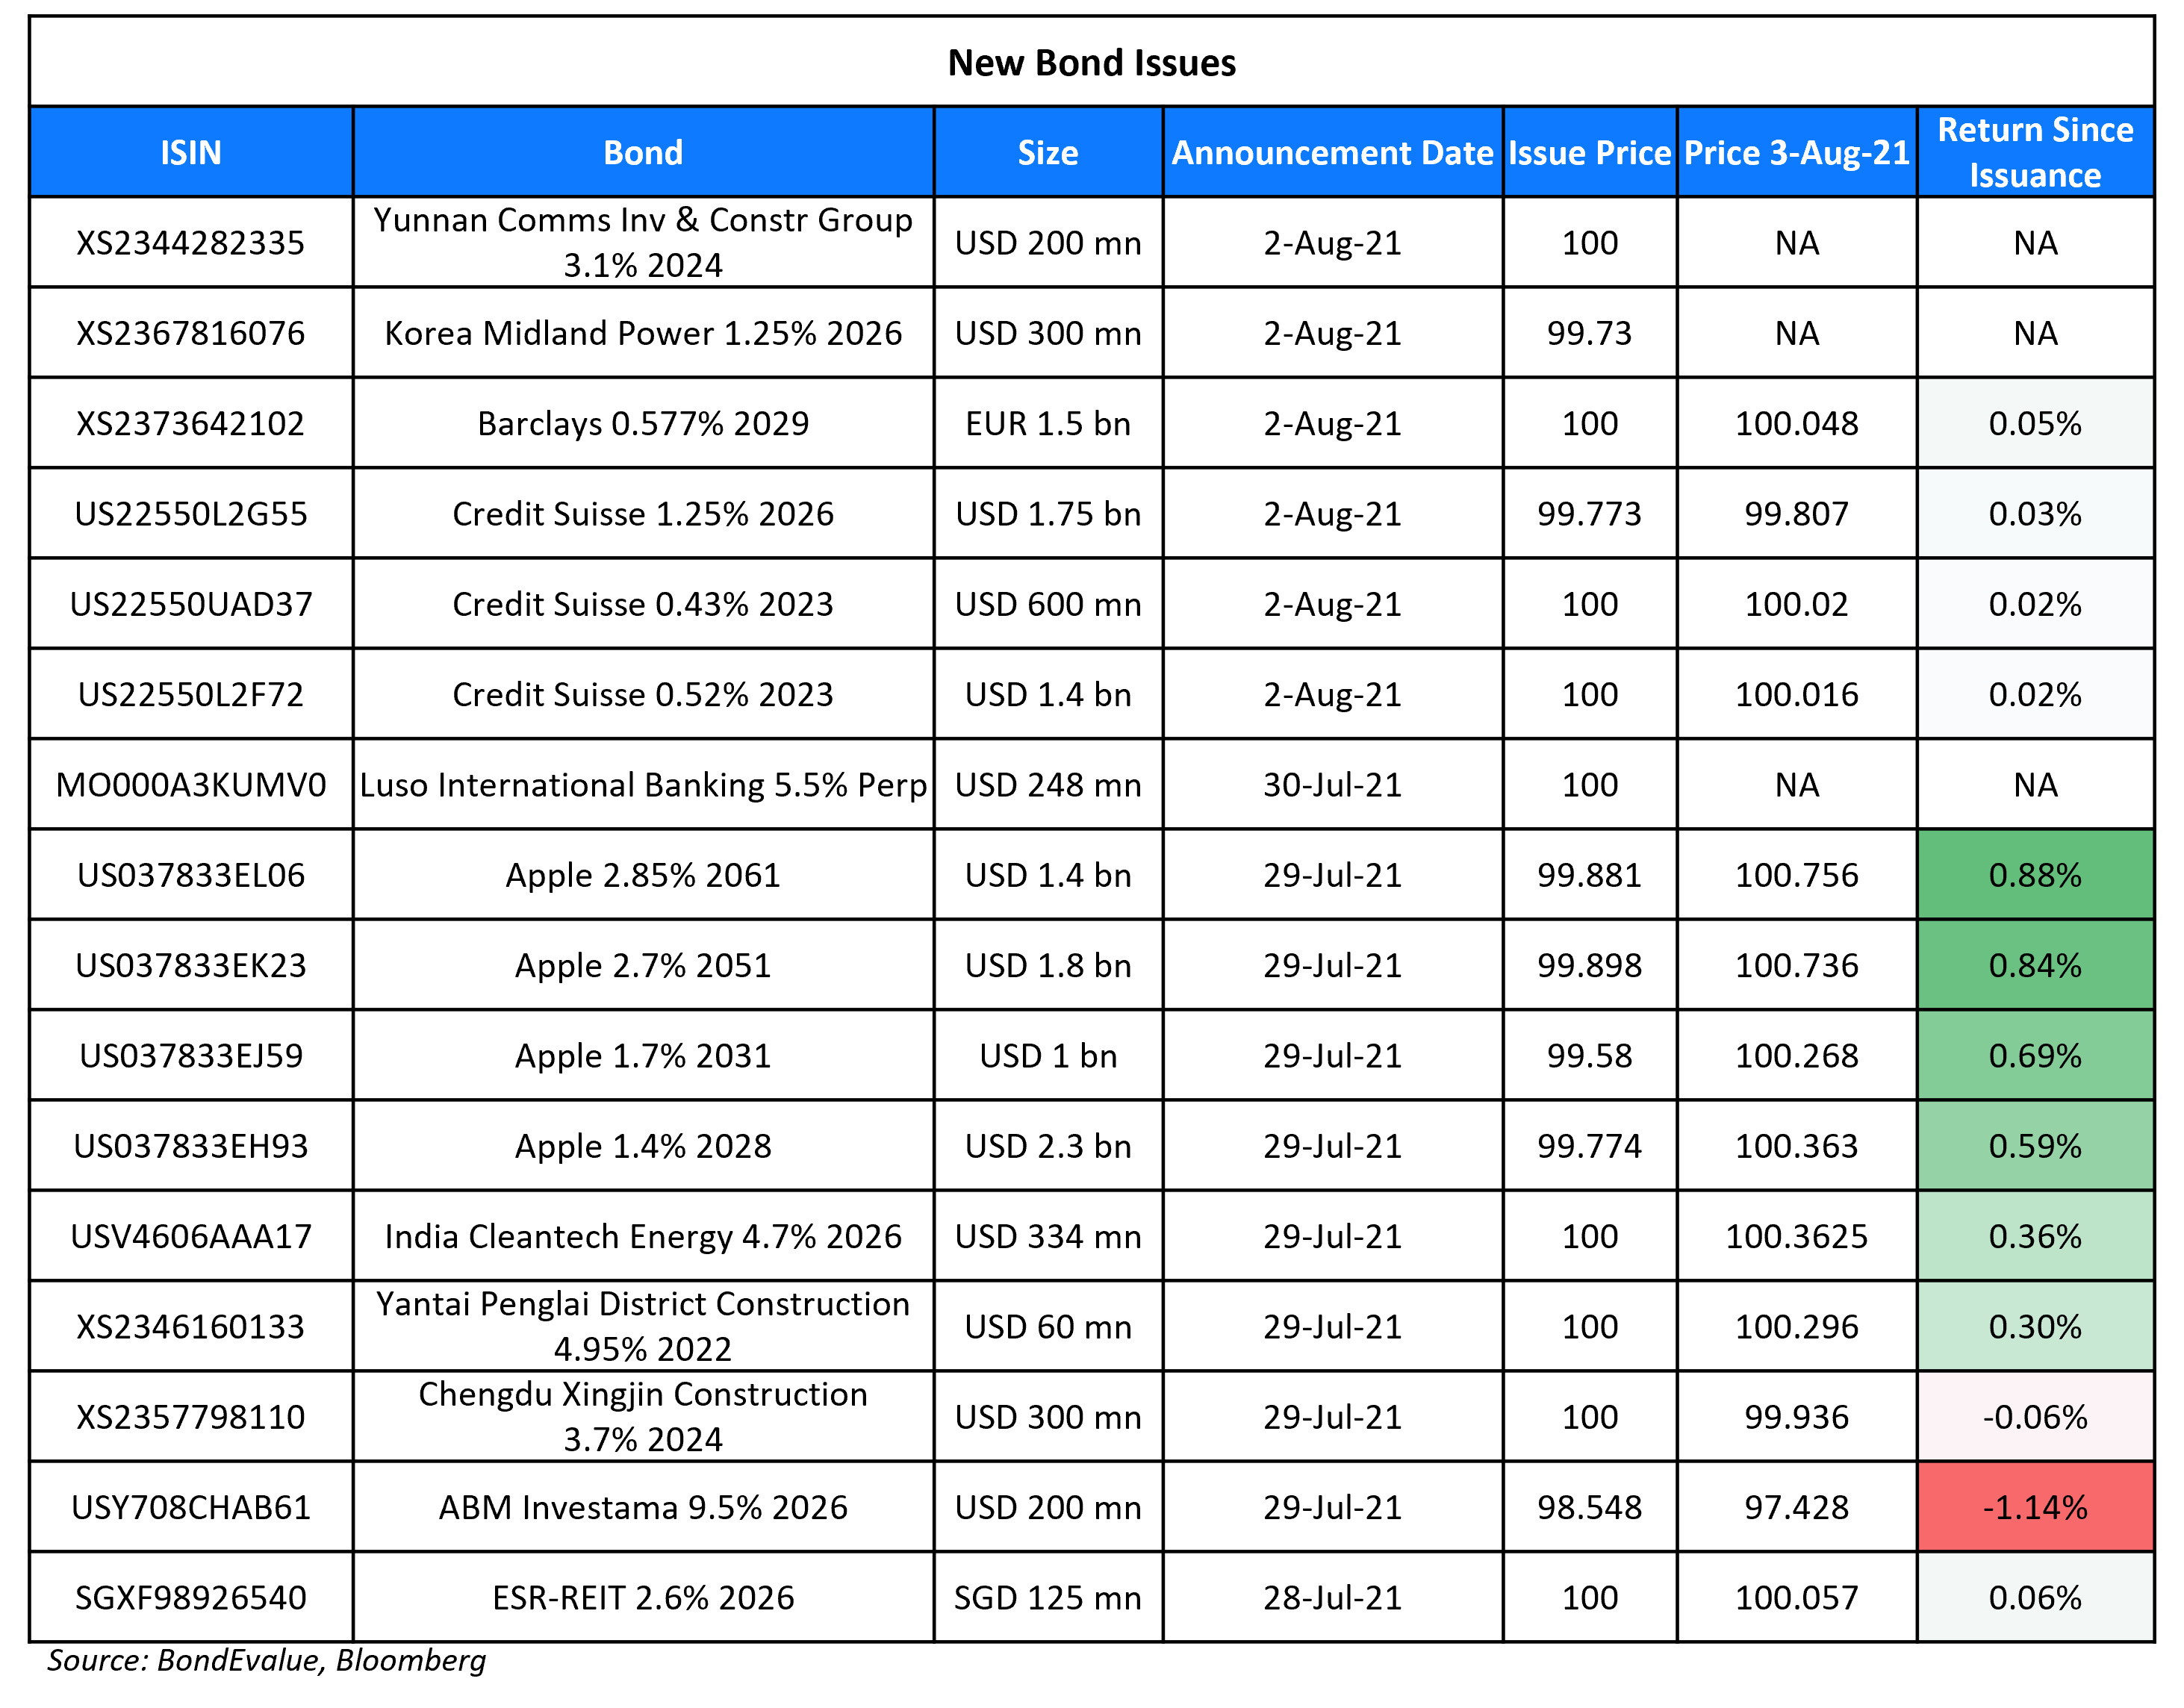 New Bond Issues 3 Aug-1